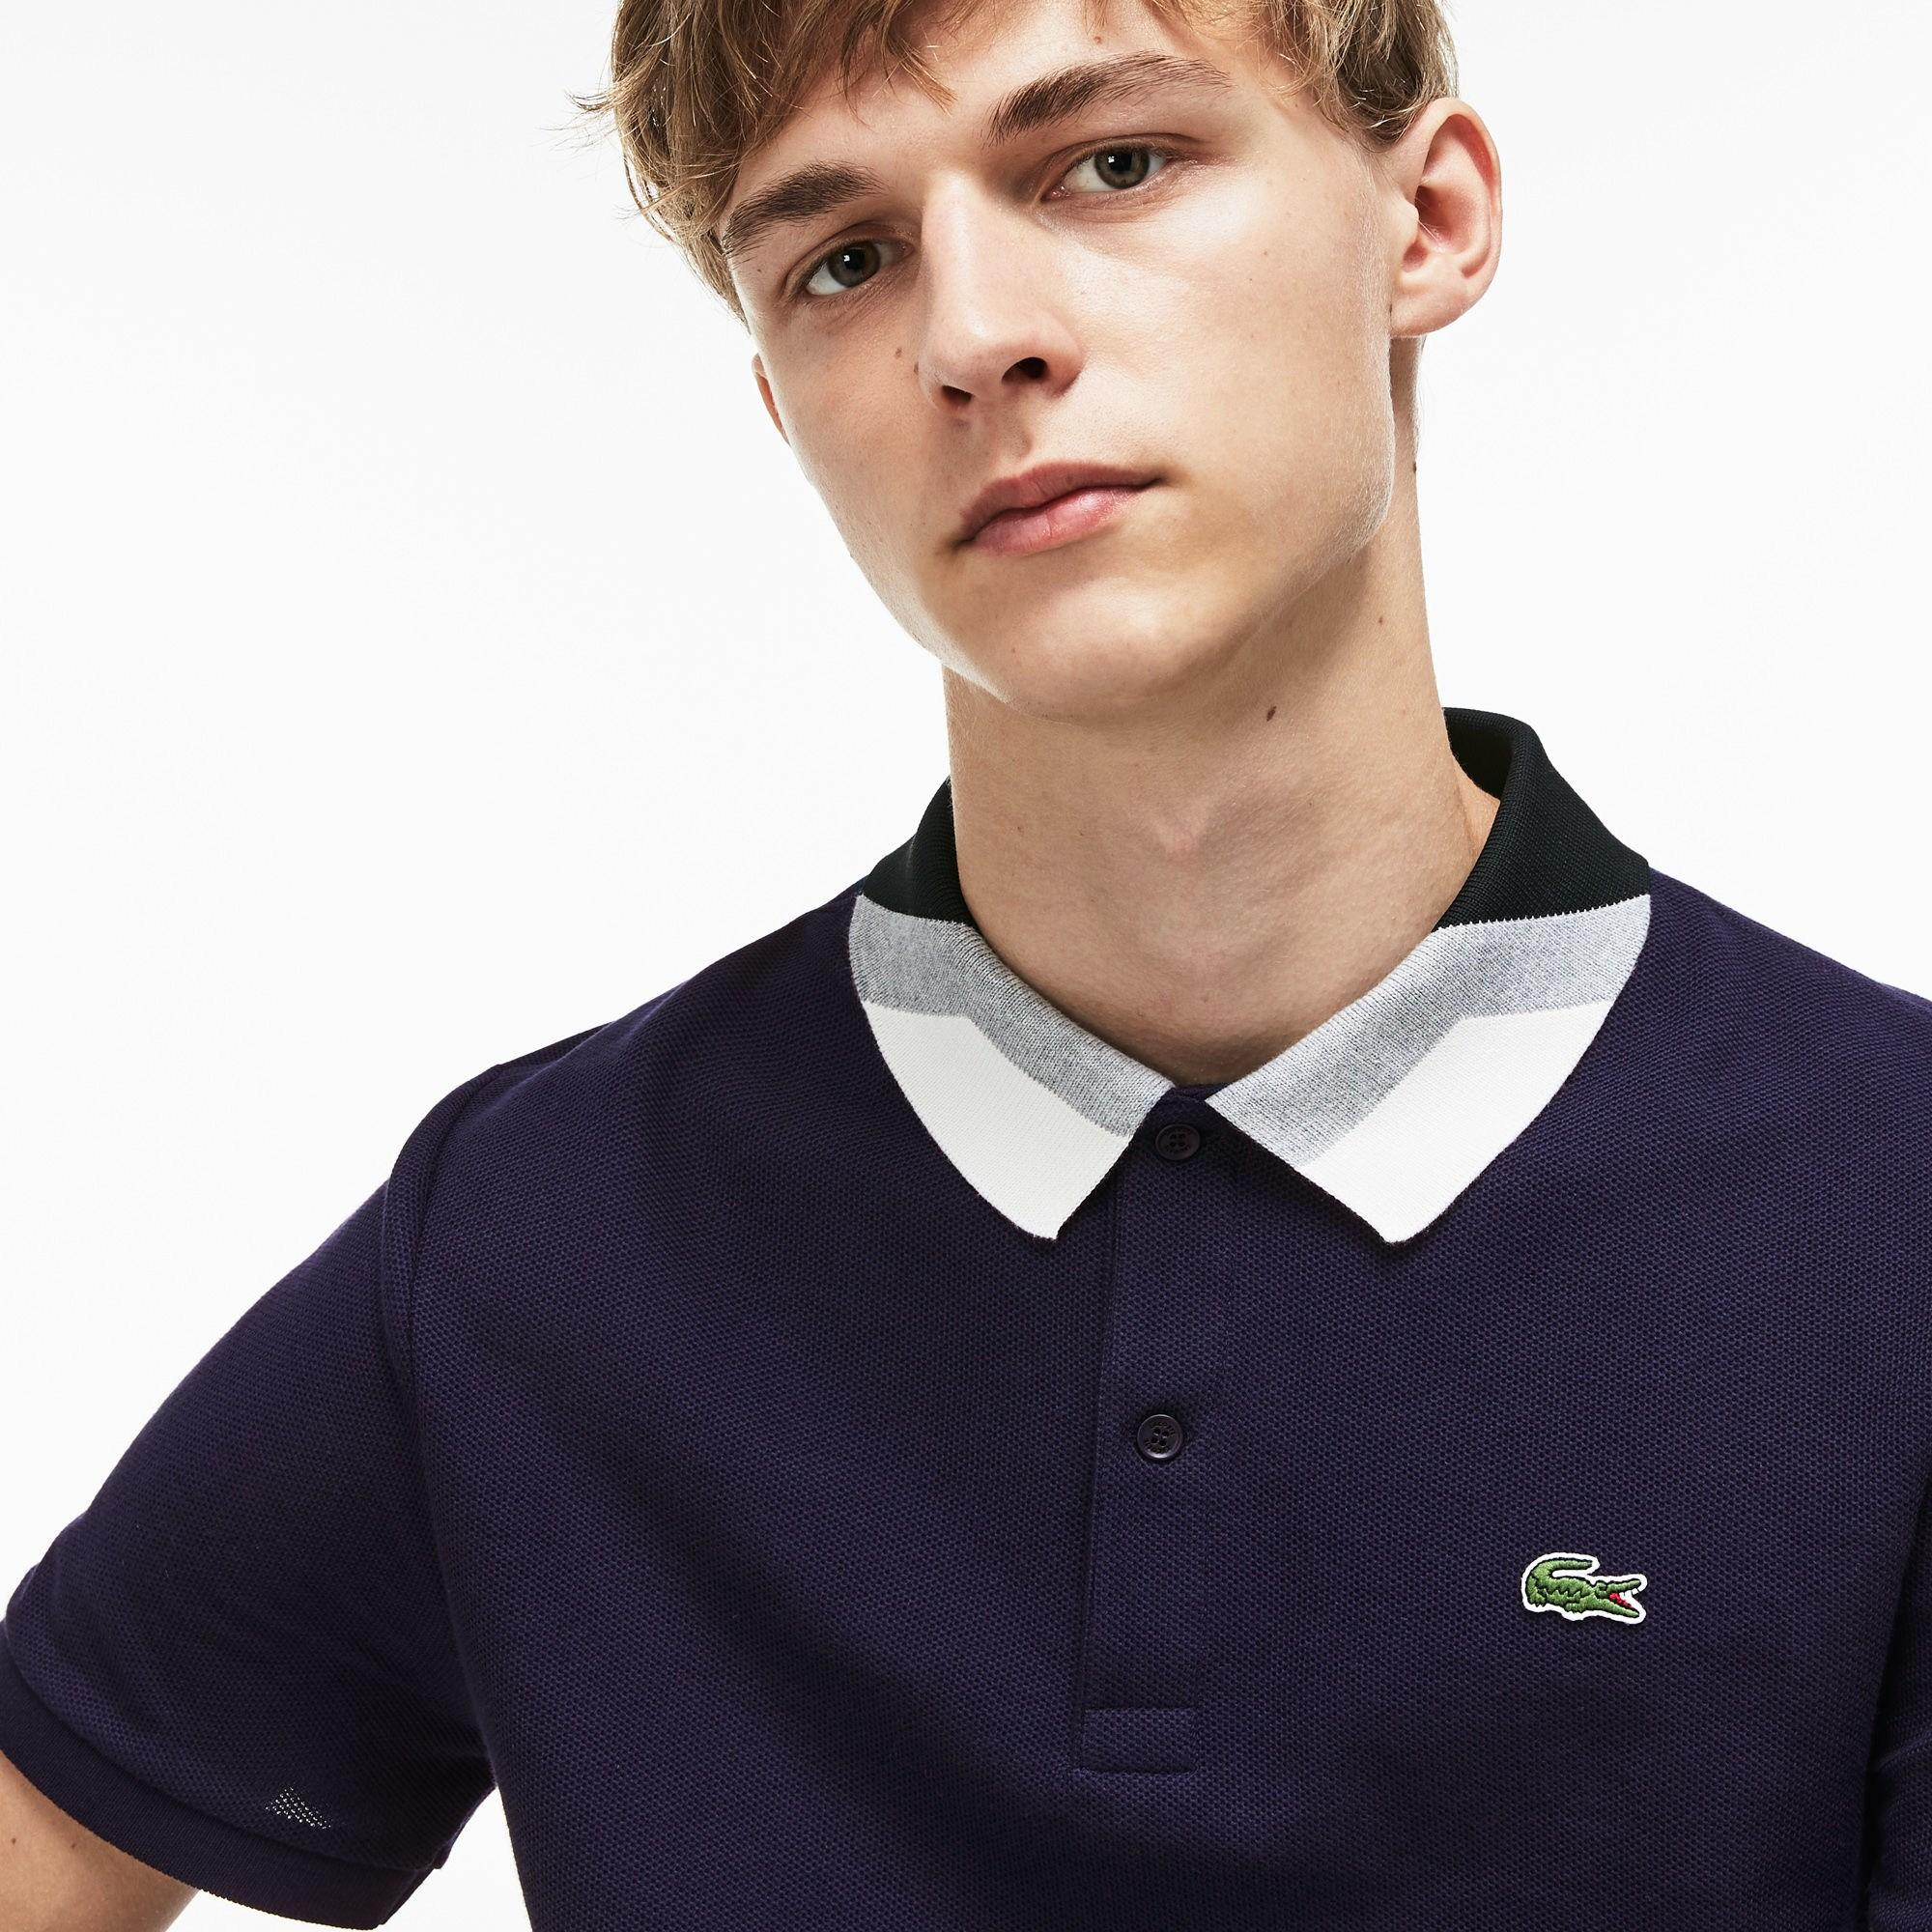 796d894a3e Lyst - Lacoste Slim Fit Colourblock Striped Knop Piqué Polo Shirt in ...